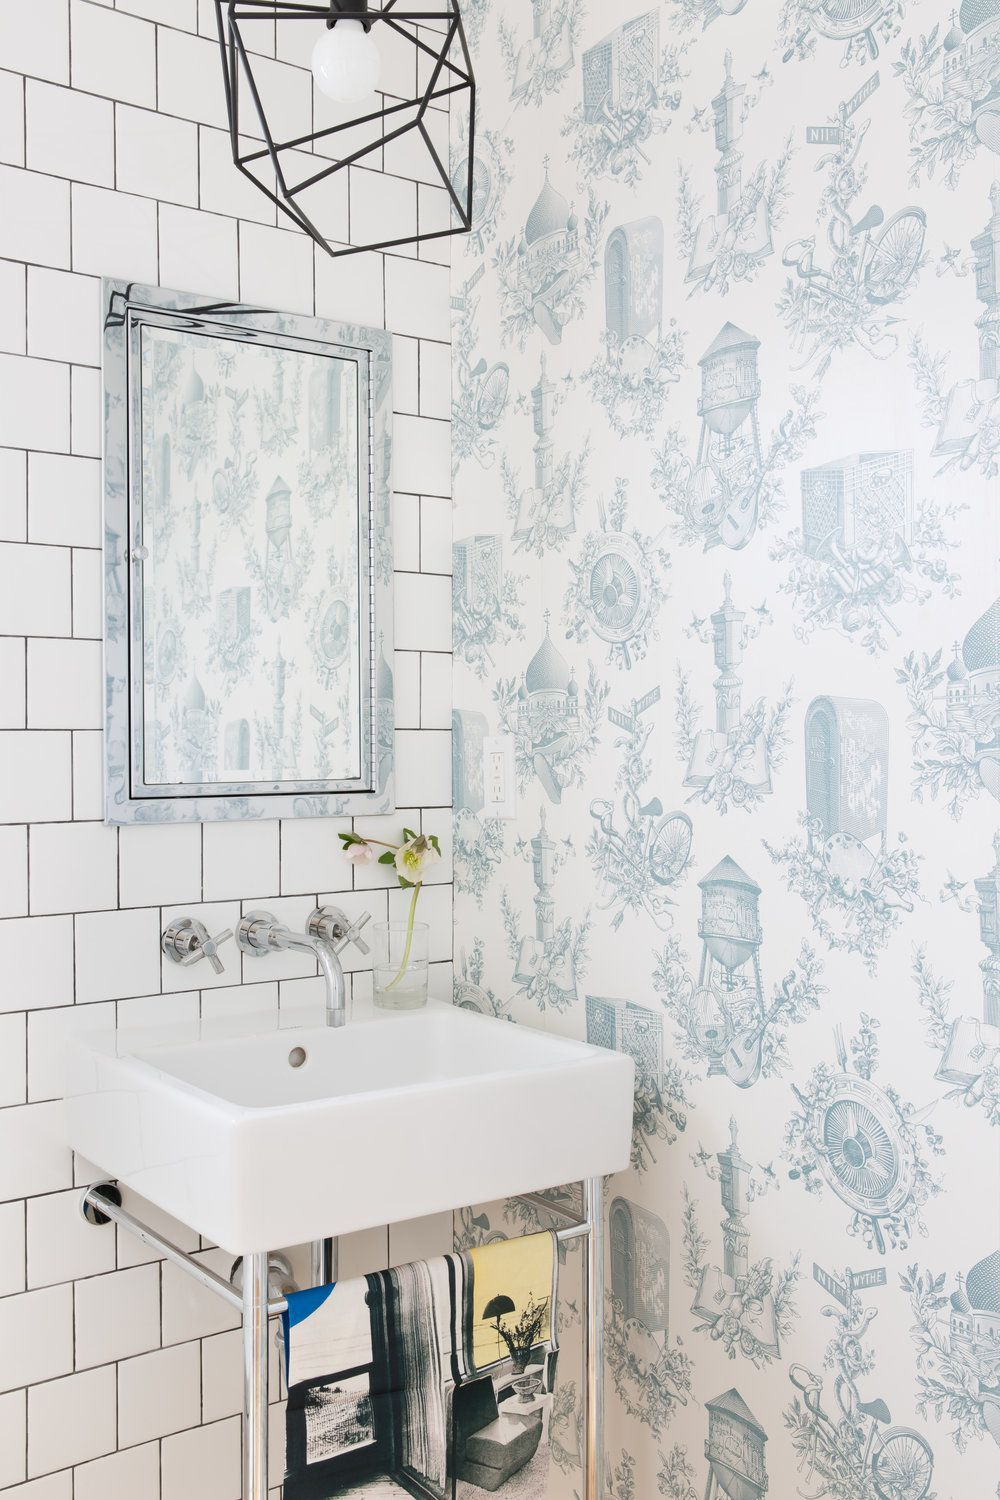 These Chic Wallpapered Bathrooms Will Convince You To Take The Plunge Bathroom Wallpaper Bathroom Decor Bathroom Design